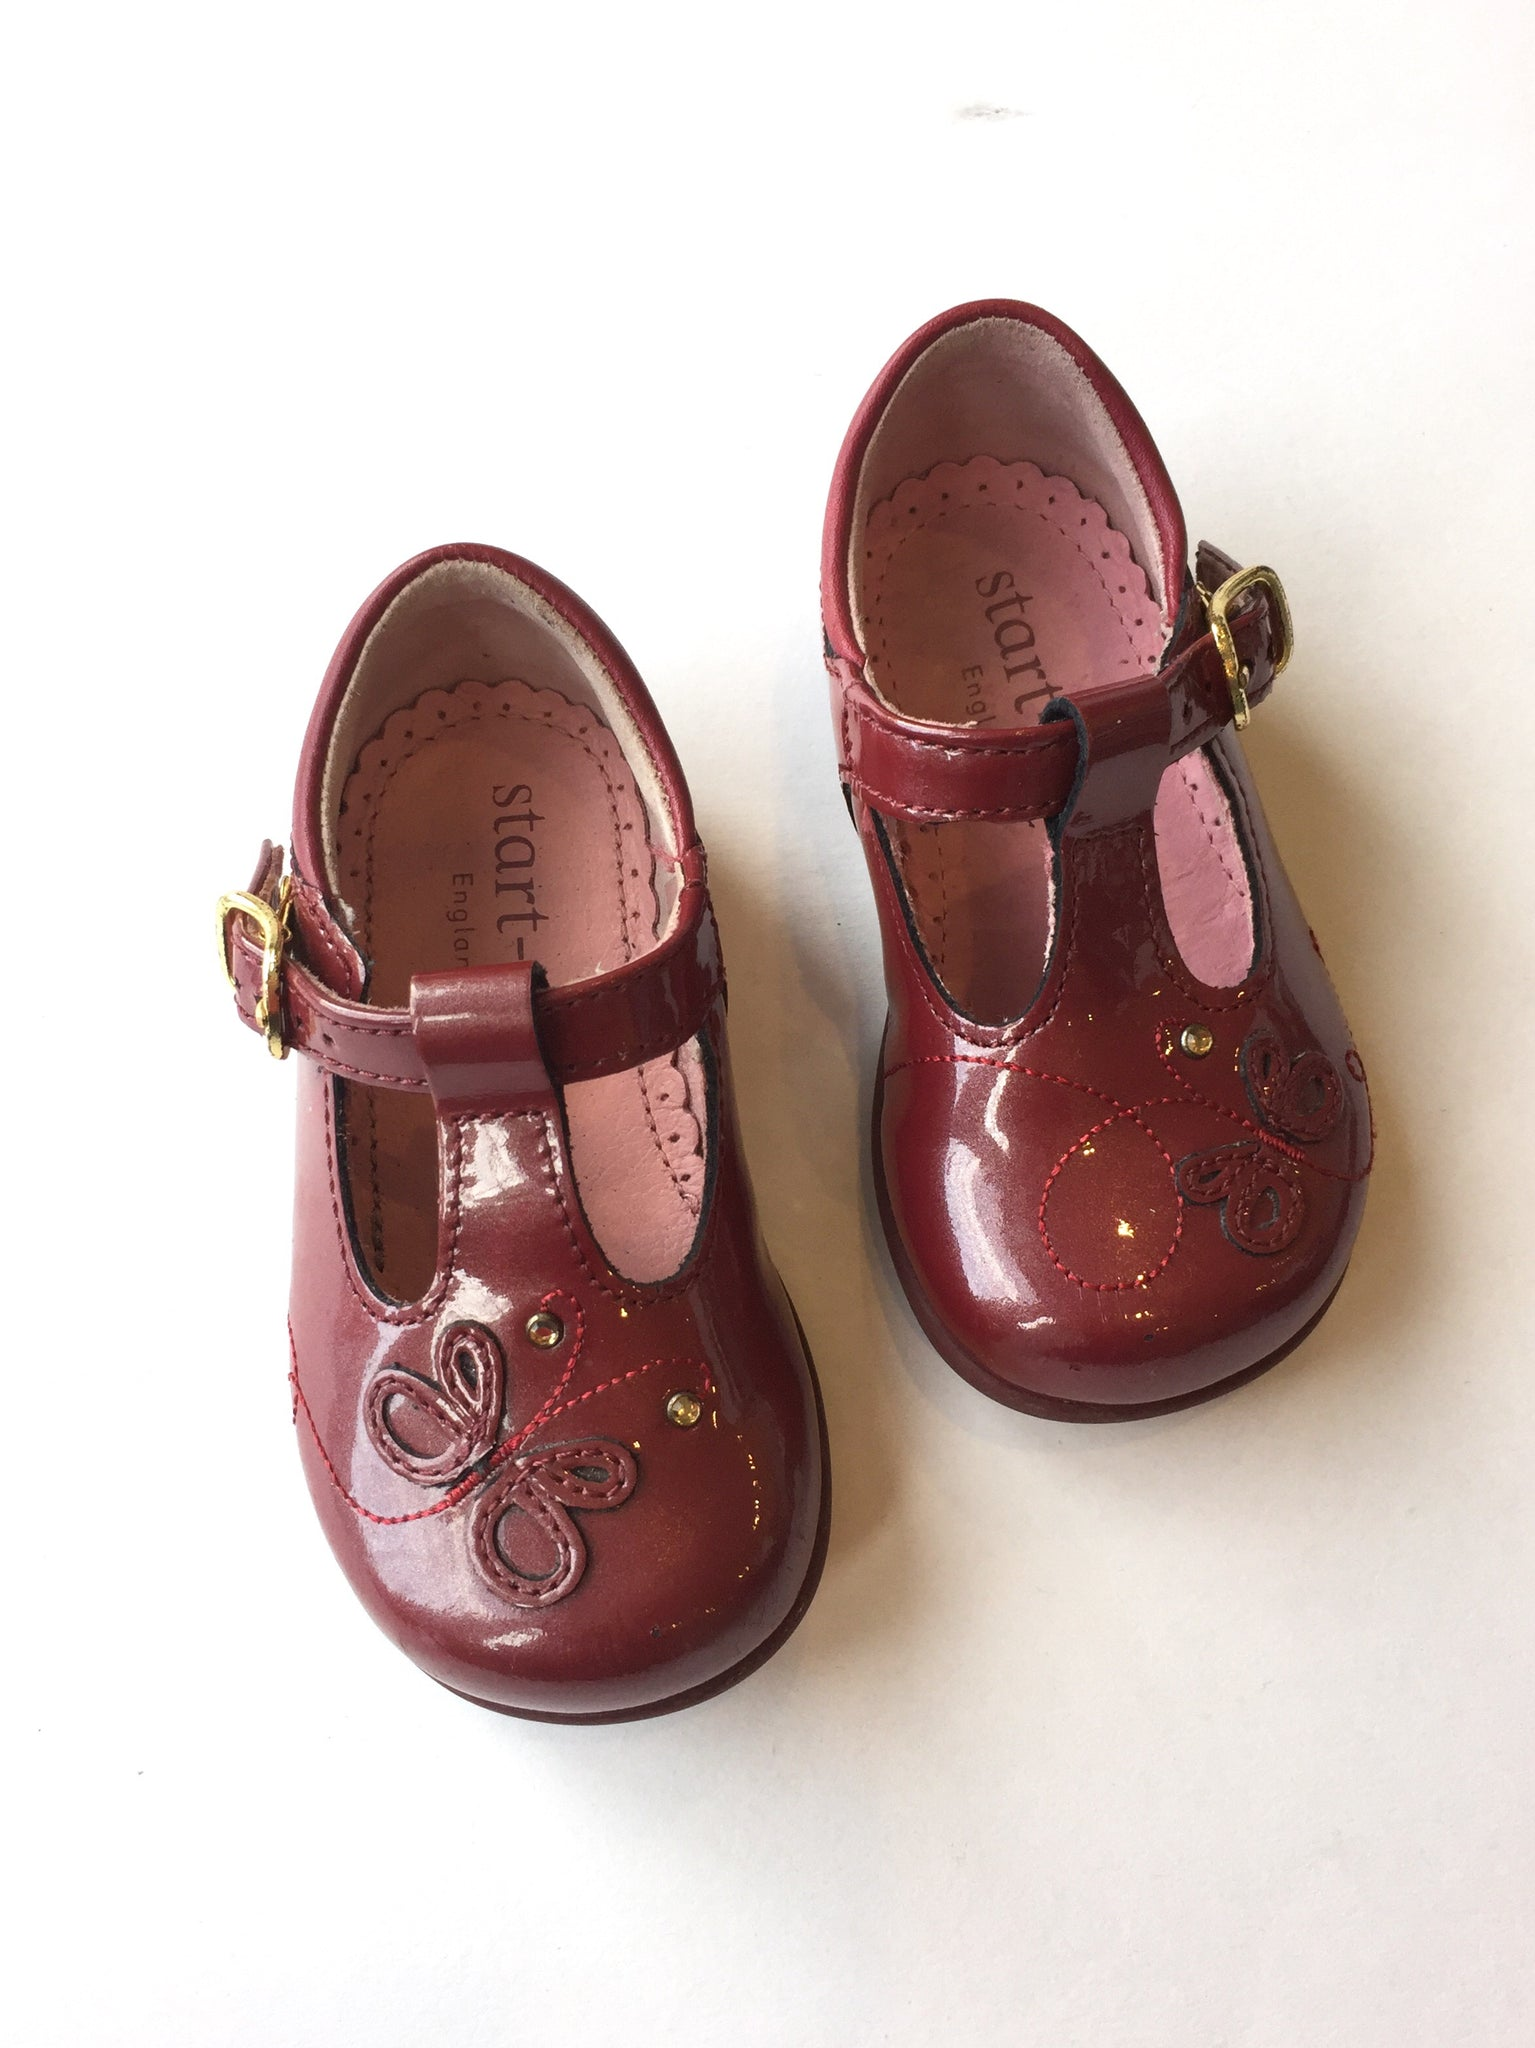 Start-Rite Shoes | Size 4